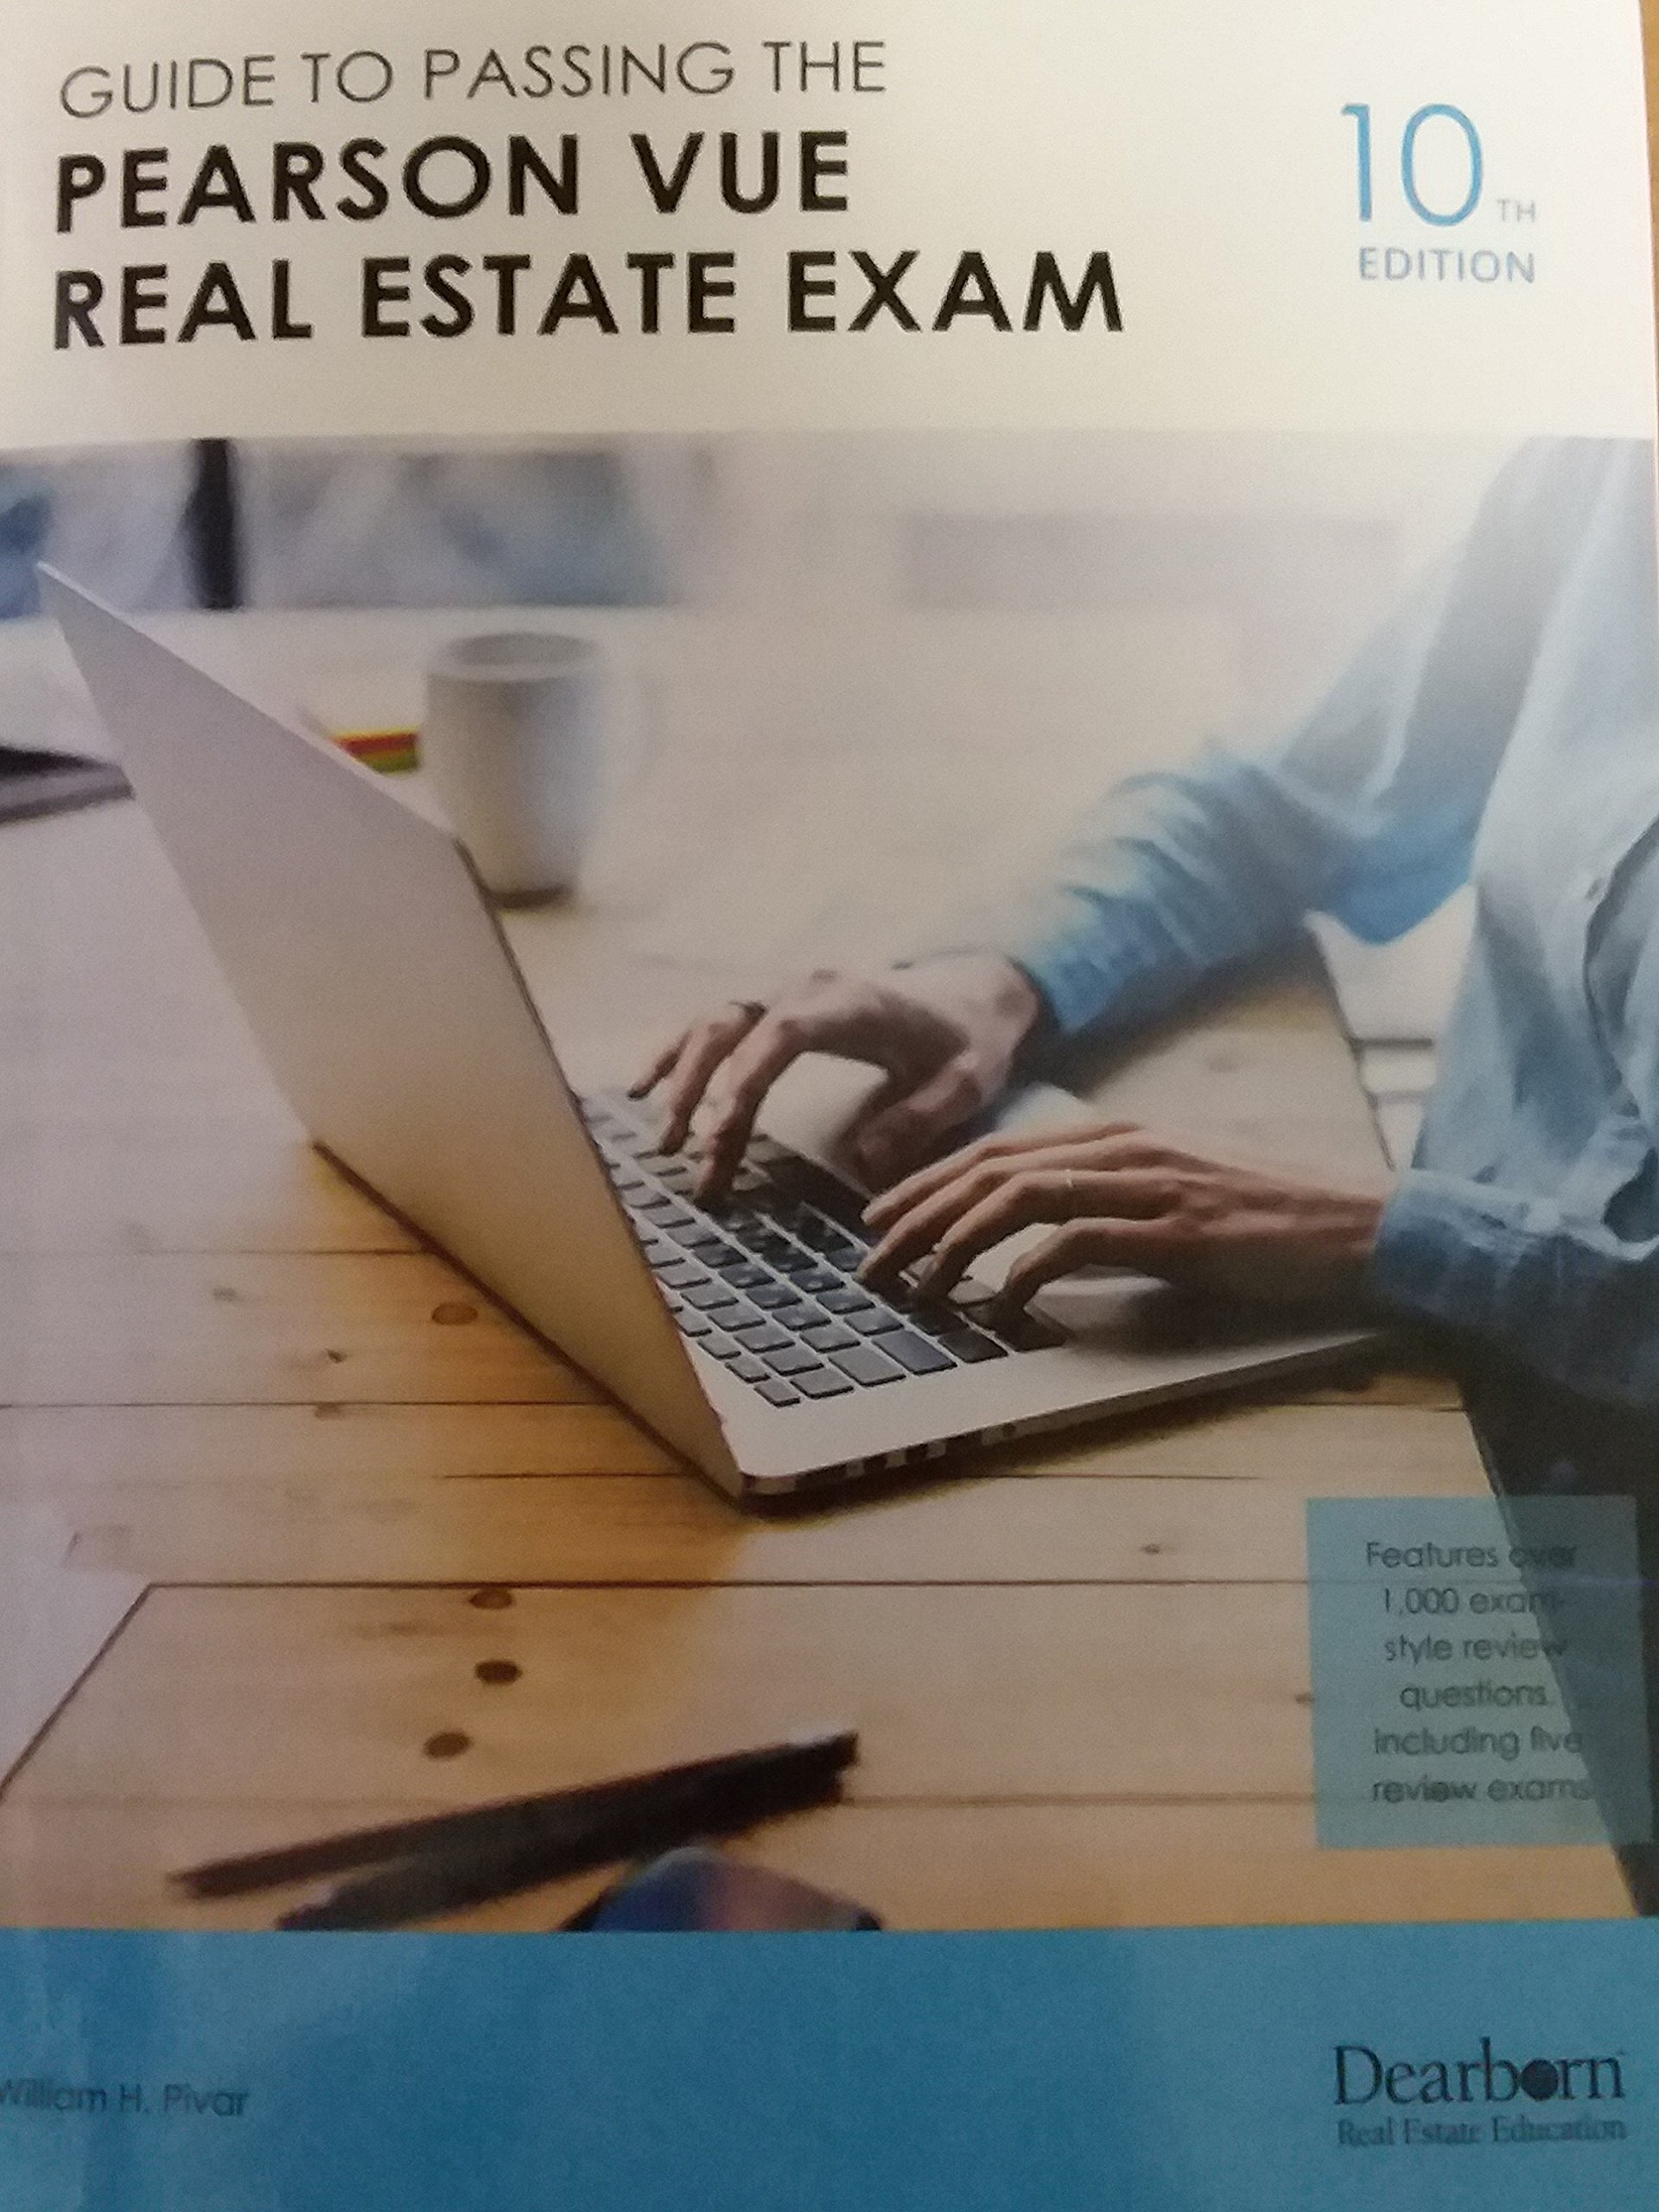 Guide To Passing The Pearson Vue Exam 10th Edition 9781475460933 Amazon Com Books